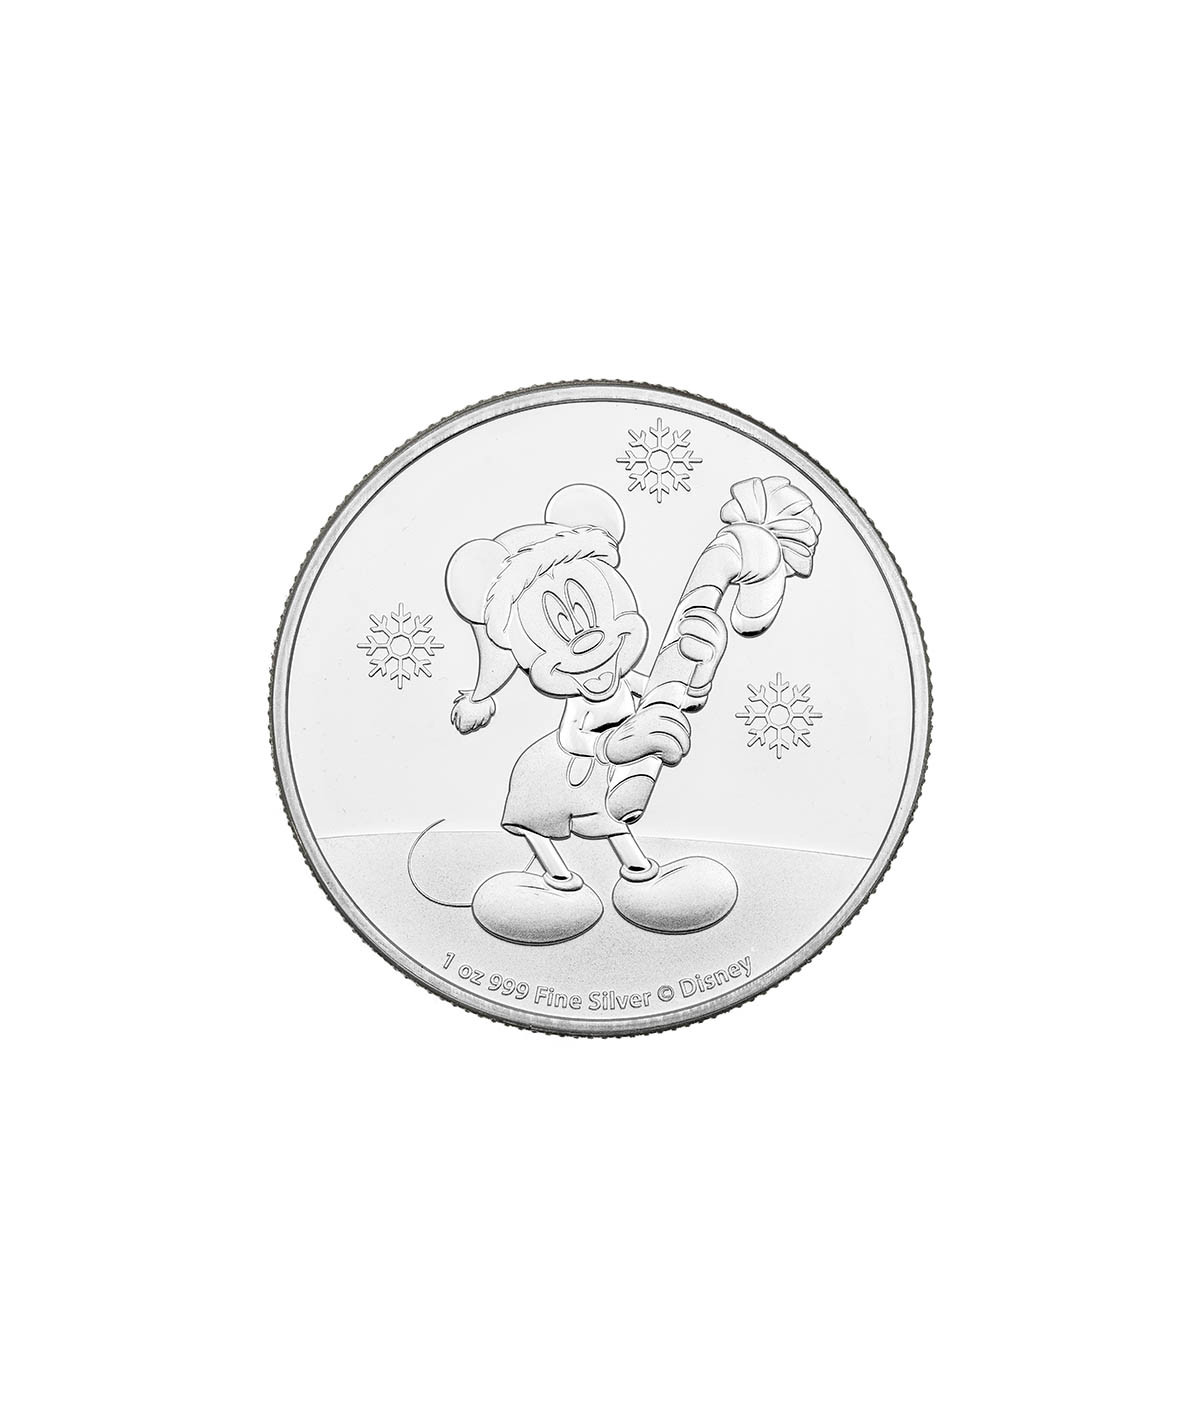 1oz Silver Coin Mickey Mouse Christmasfrom 2020 - Disney series